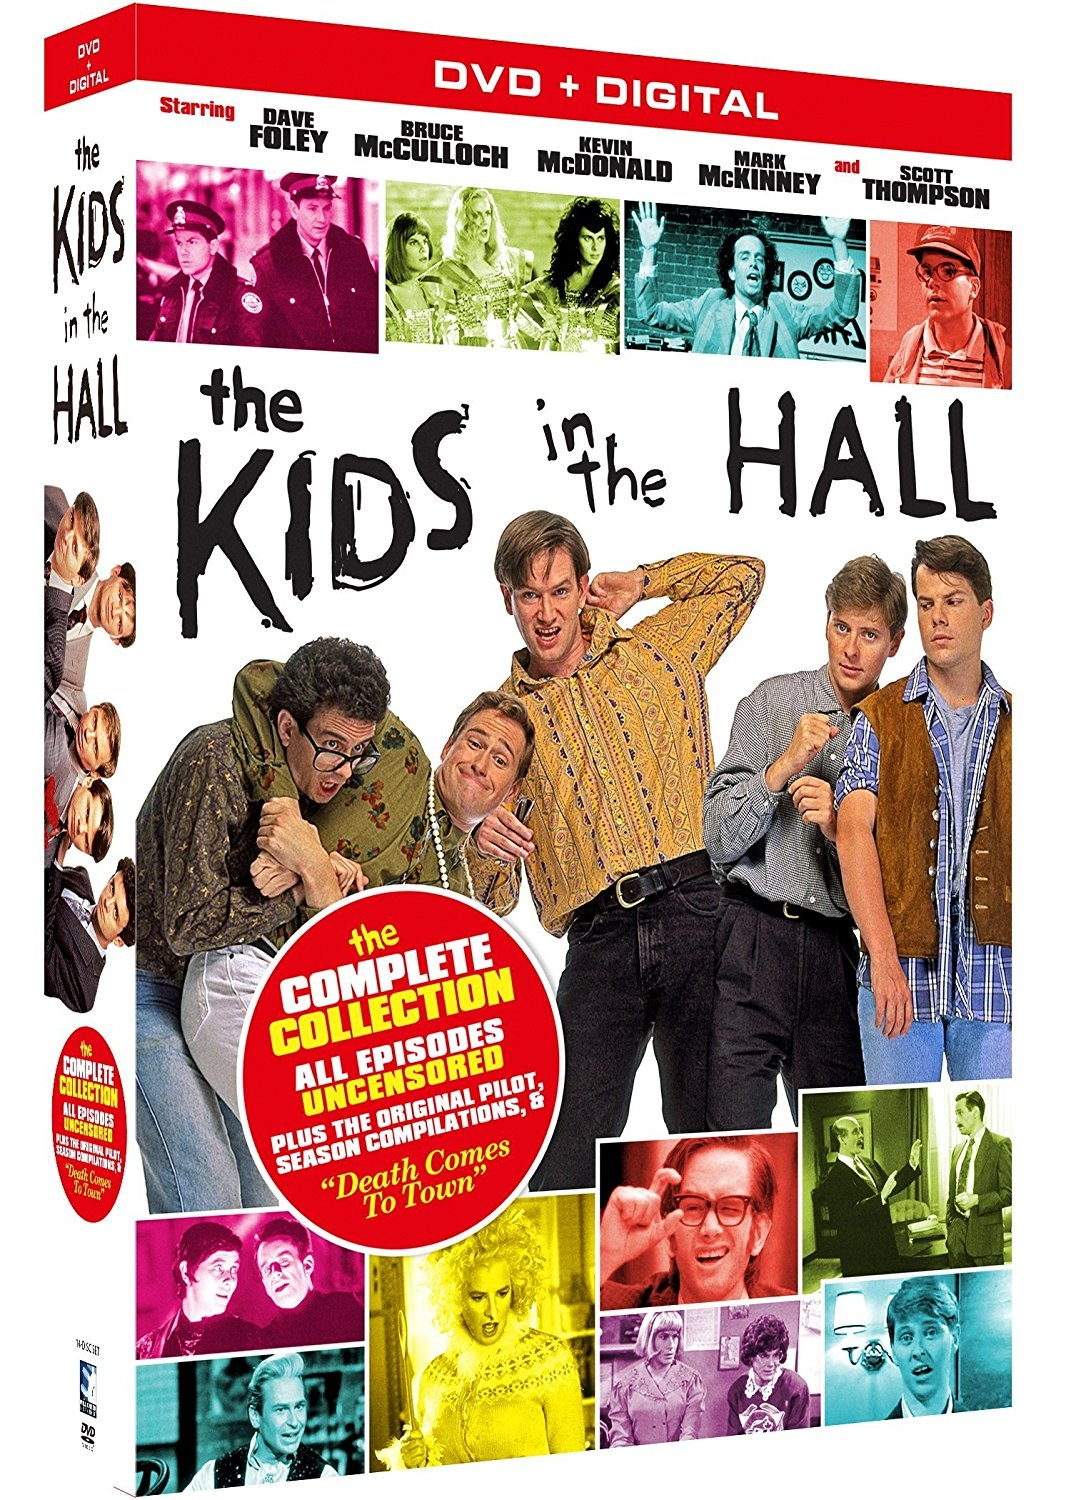 Kids In The Hall - The Complete Collection + Digital by Unknown, ISBN: 0826831071763